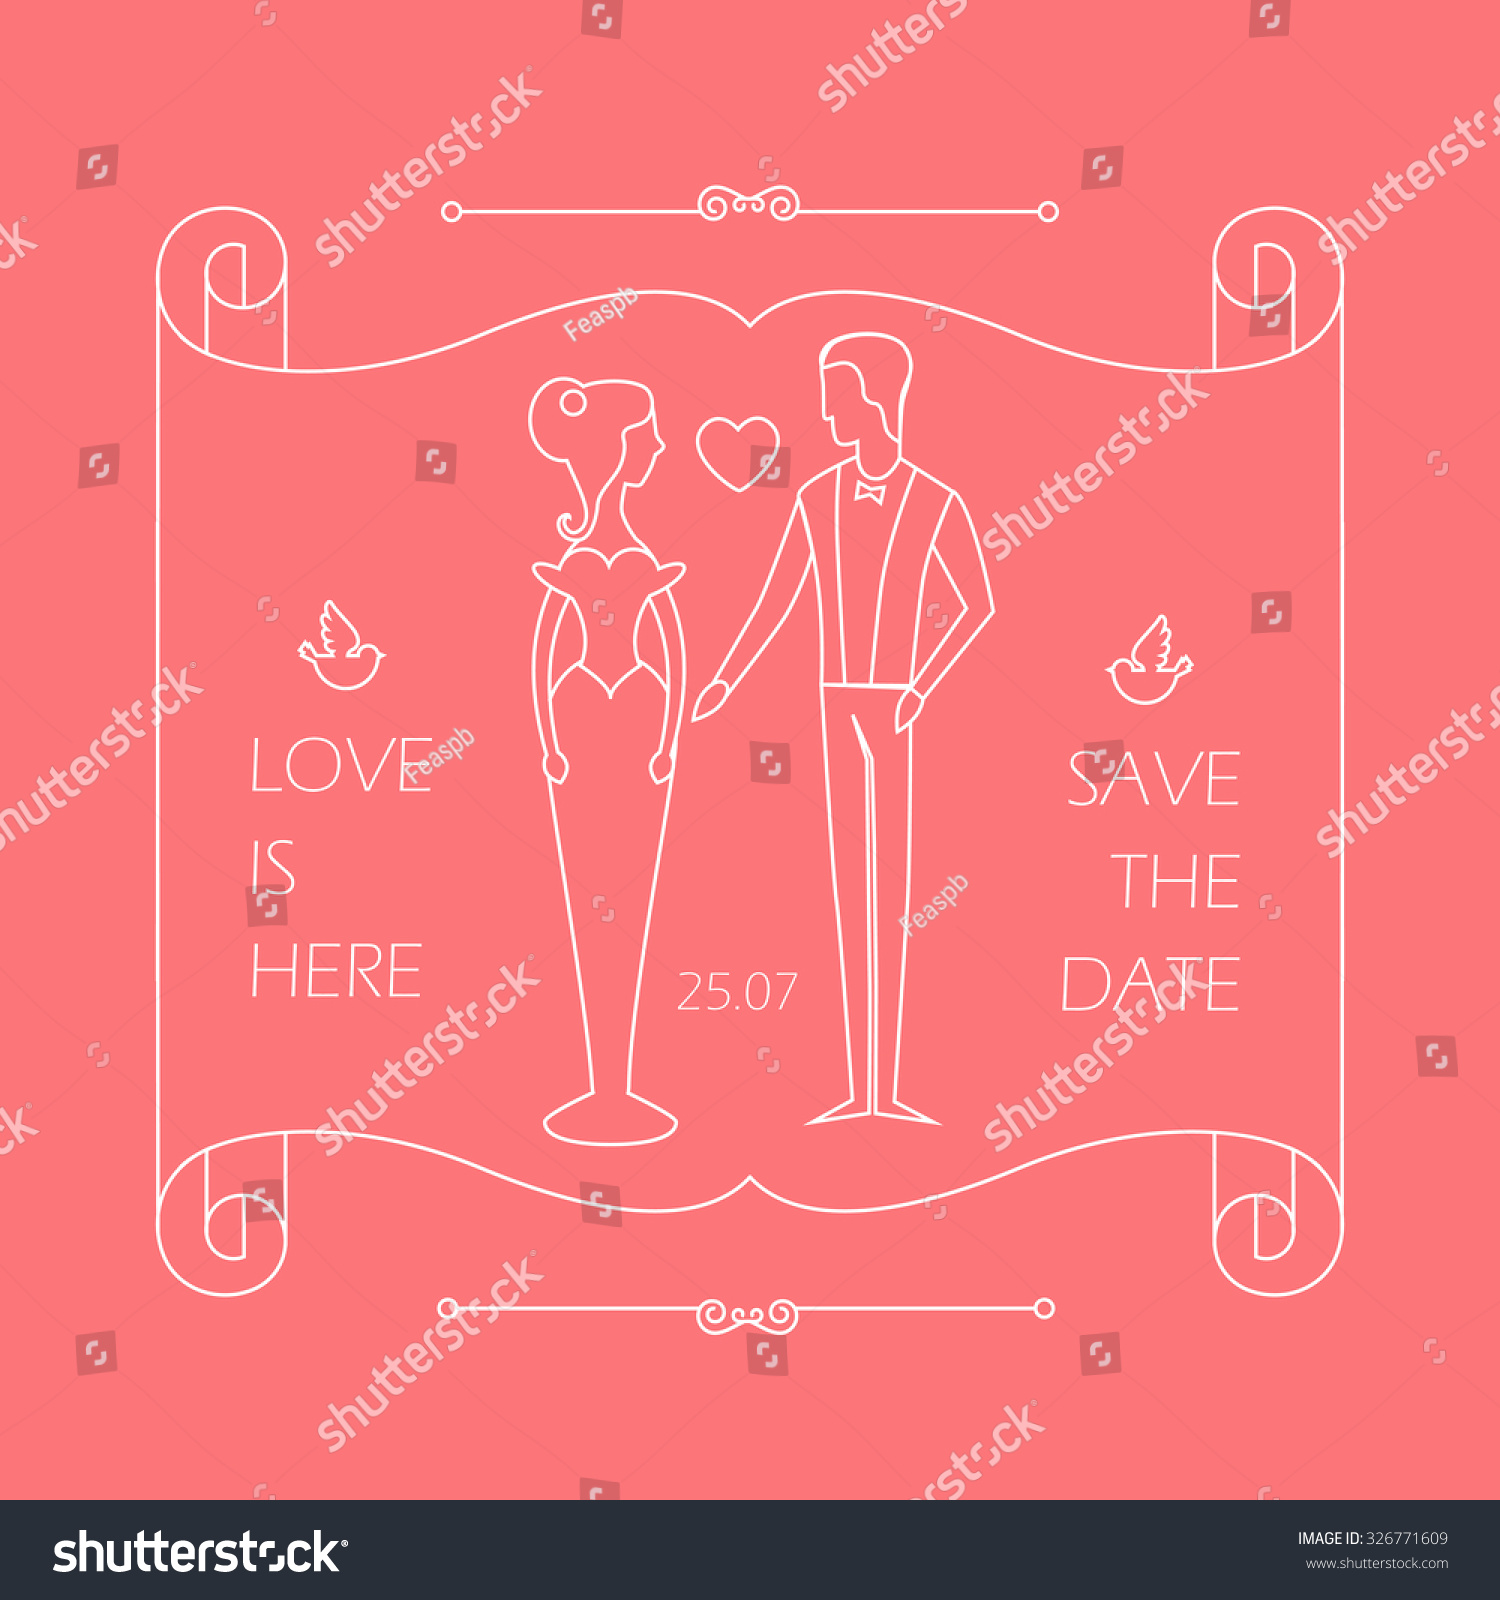 Vintage Wedding Invitation Groom Bride Trendy Stock Vector 326771609 ...